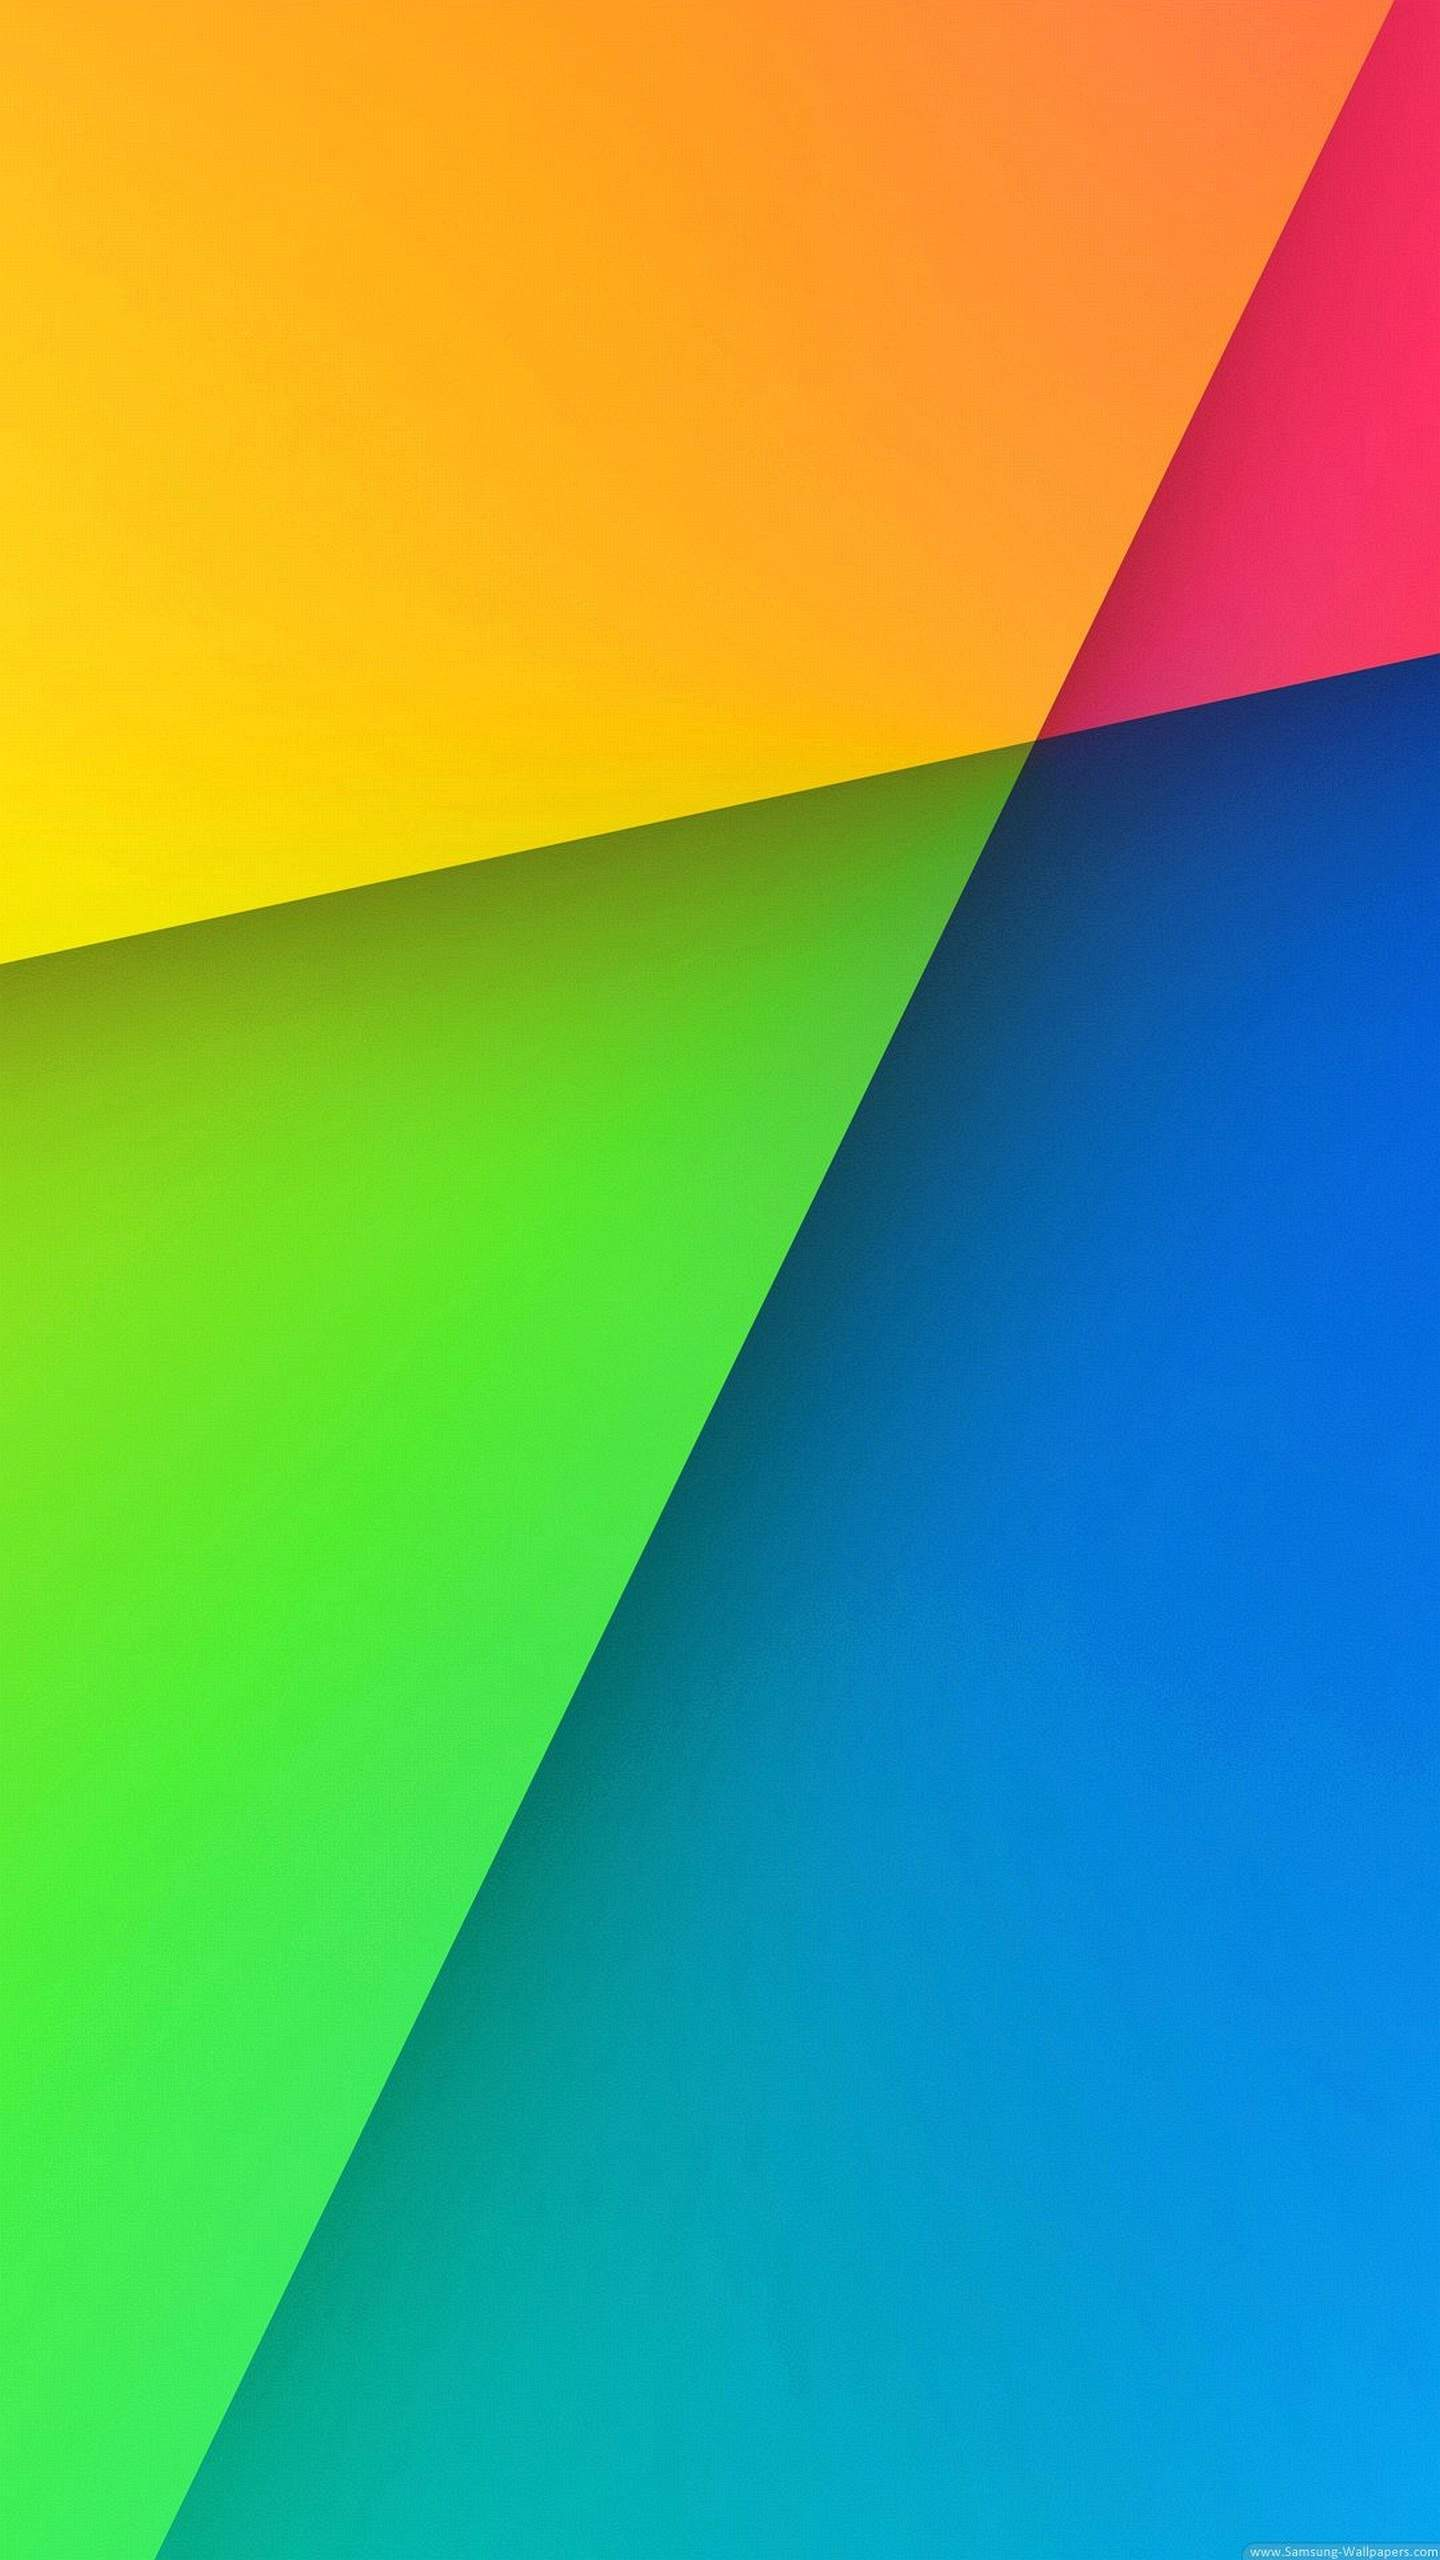 Cult of android 20 colorful wallpapers for your quad hd smartphone - Wallpapers android hd ...